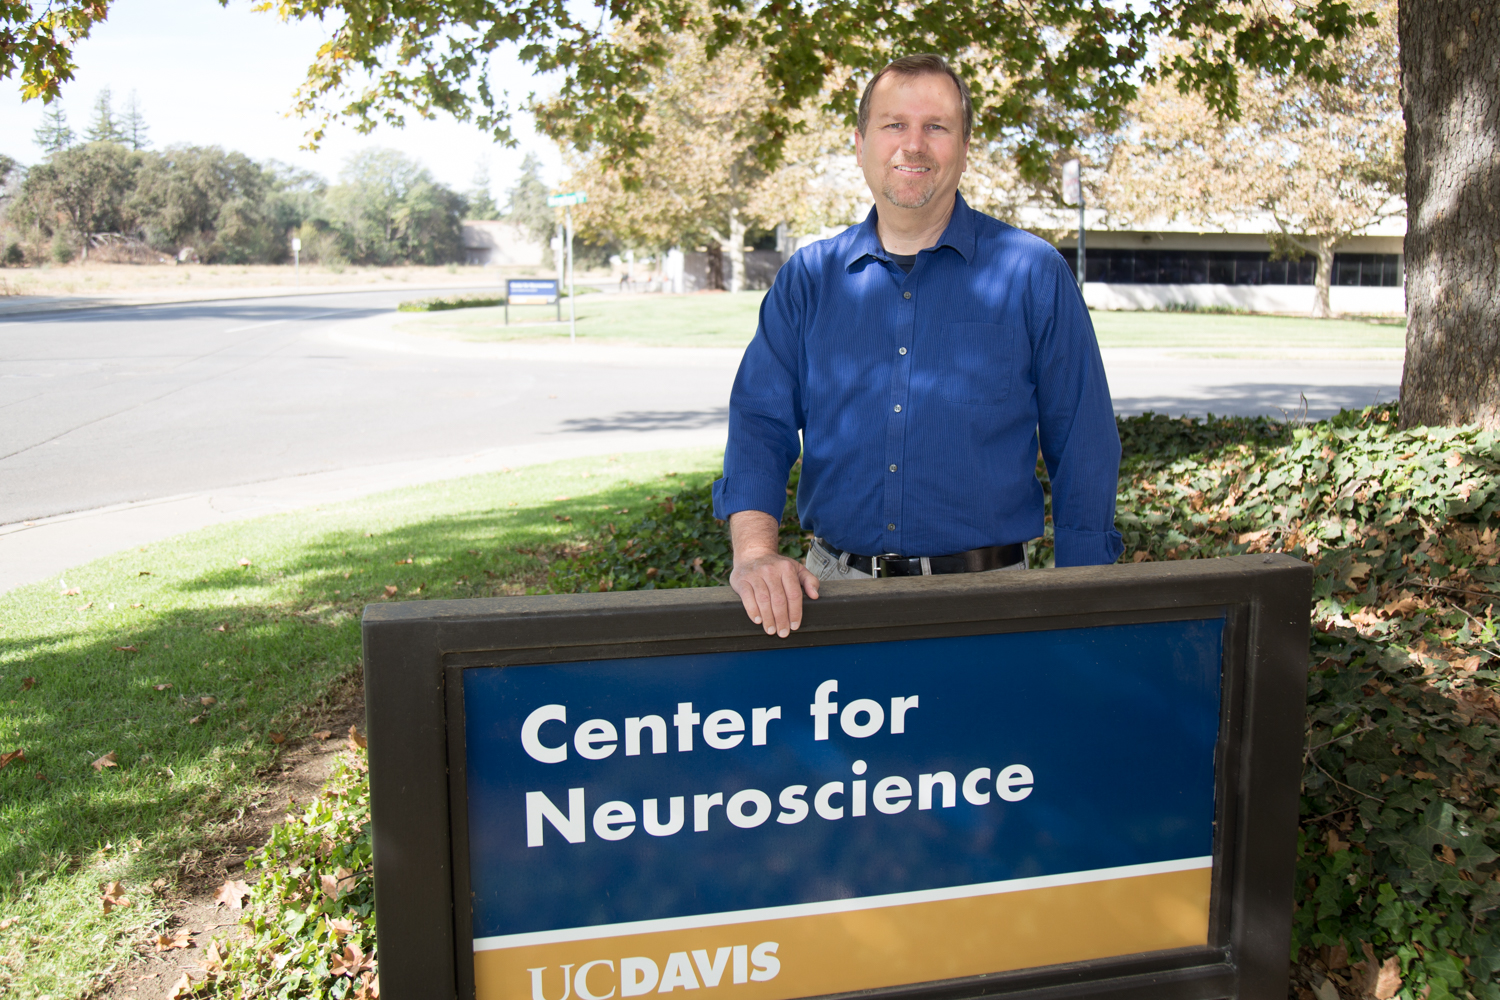 Picture of Marty in front of the center for neuroscience sign